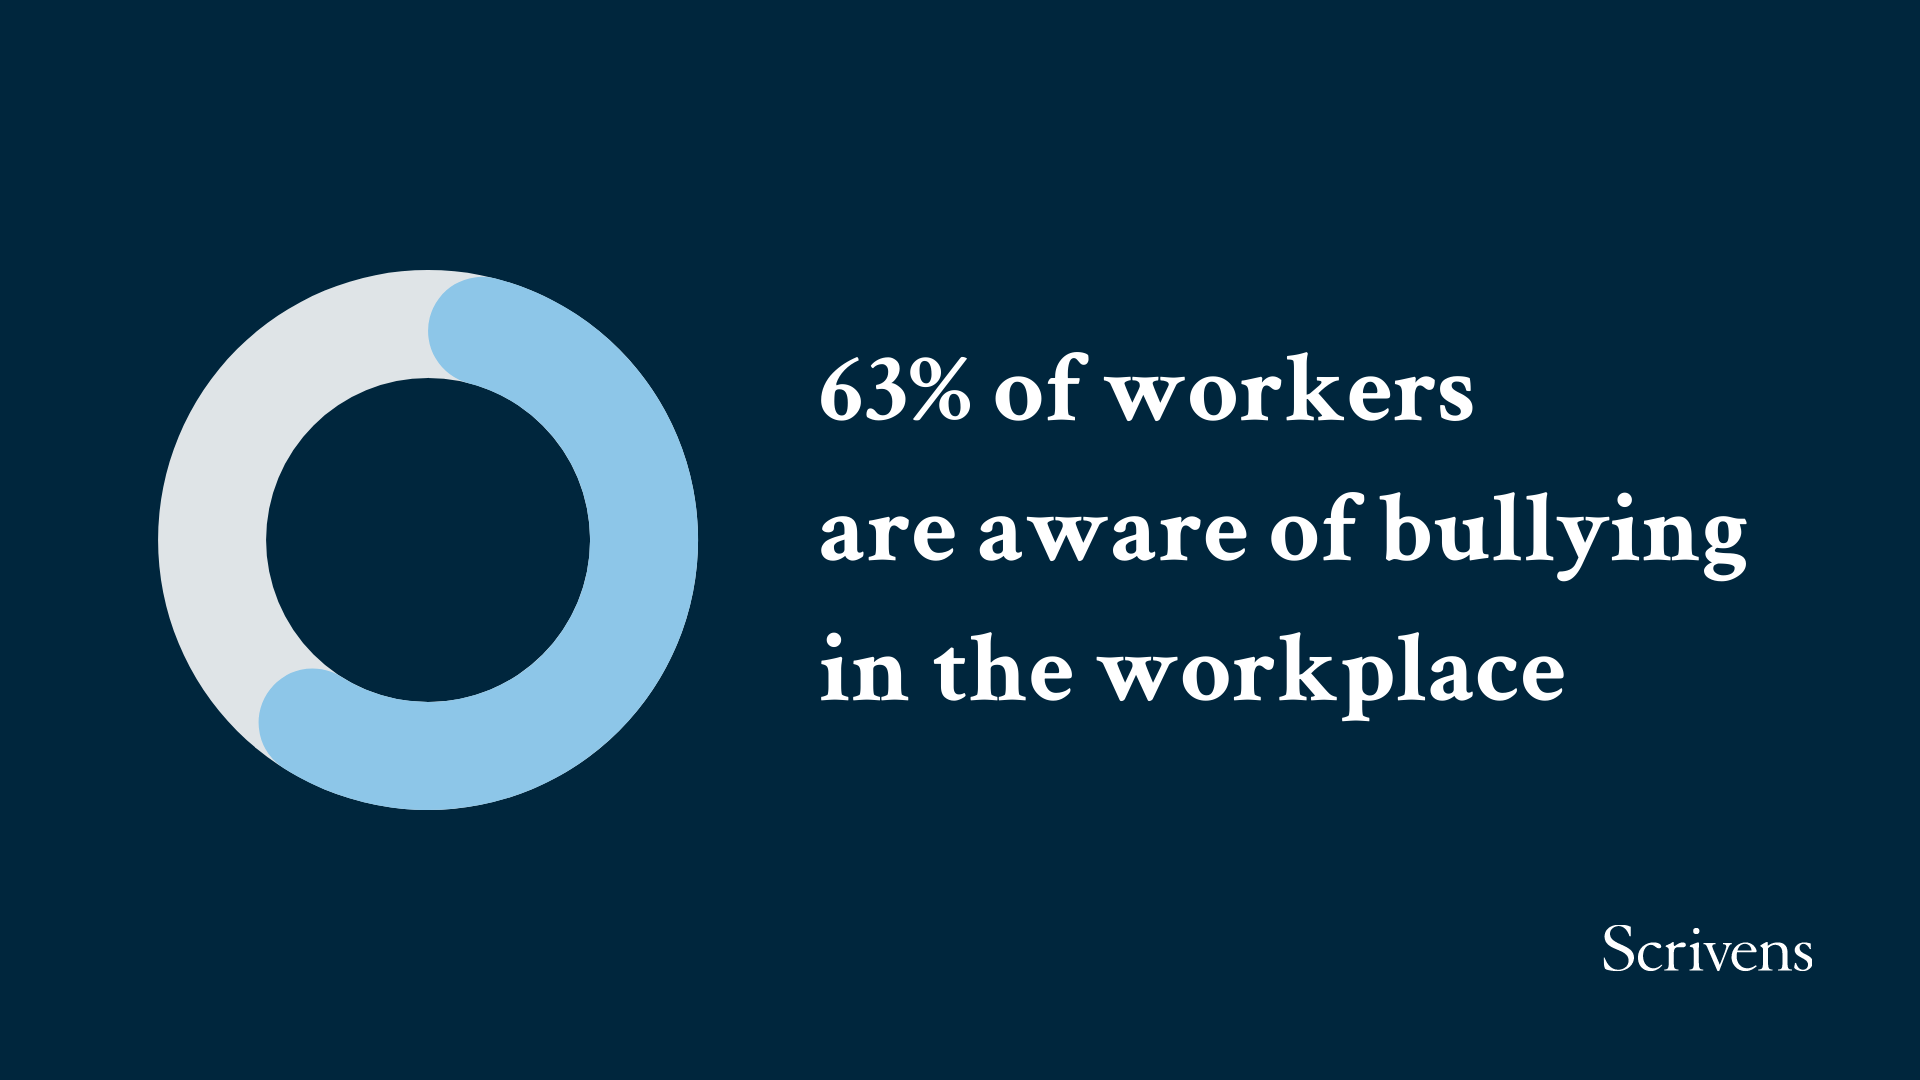 63% of workers are aware of bullying in the workplace